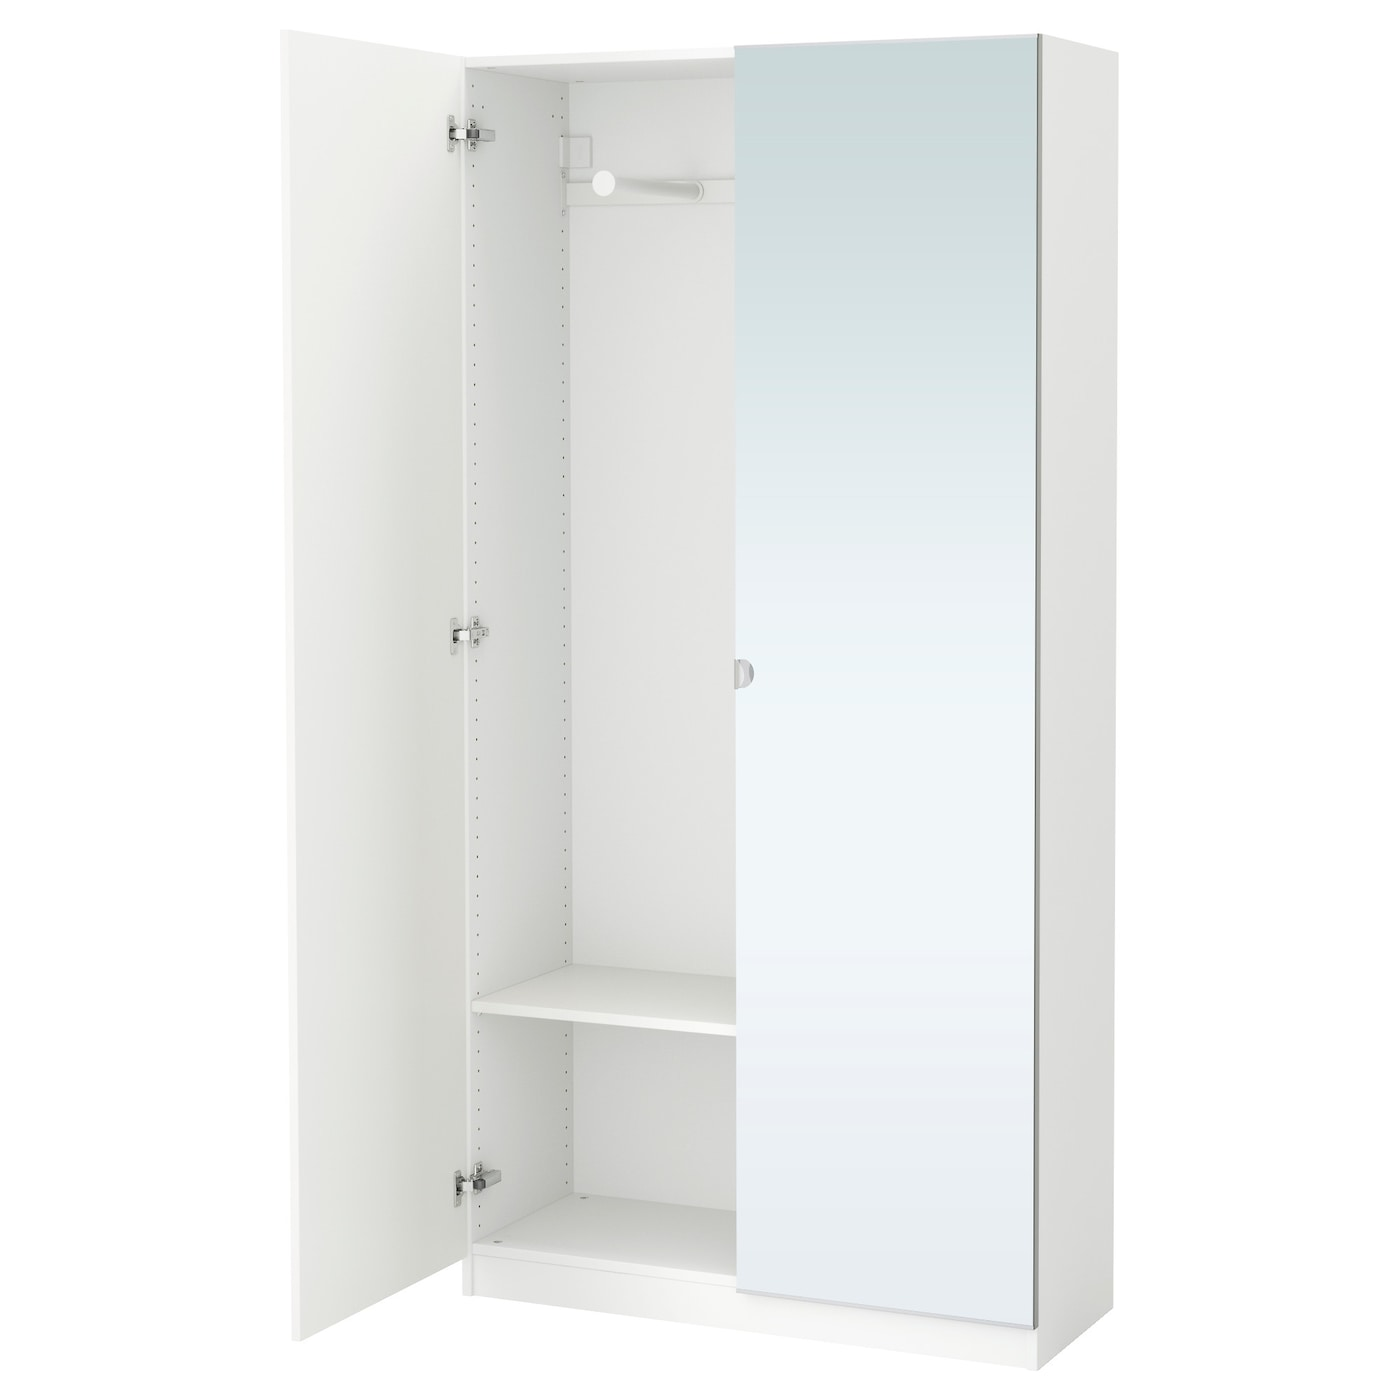 Ikea pax closet pax scharnier sanft schlieend ikea the ikea home tour squad - Customiser armoire ikea ...